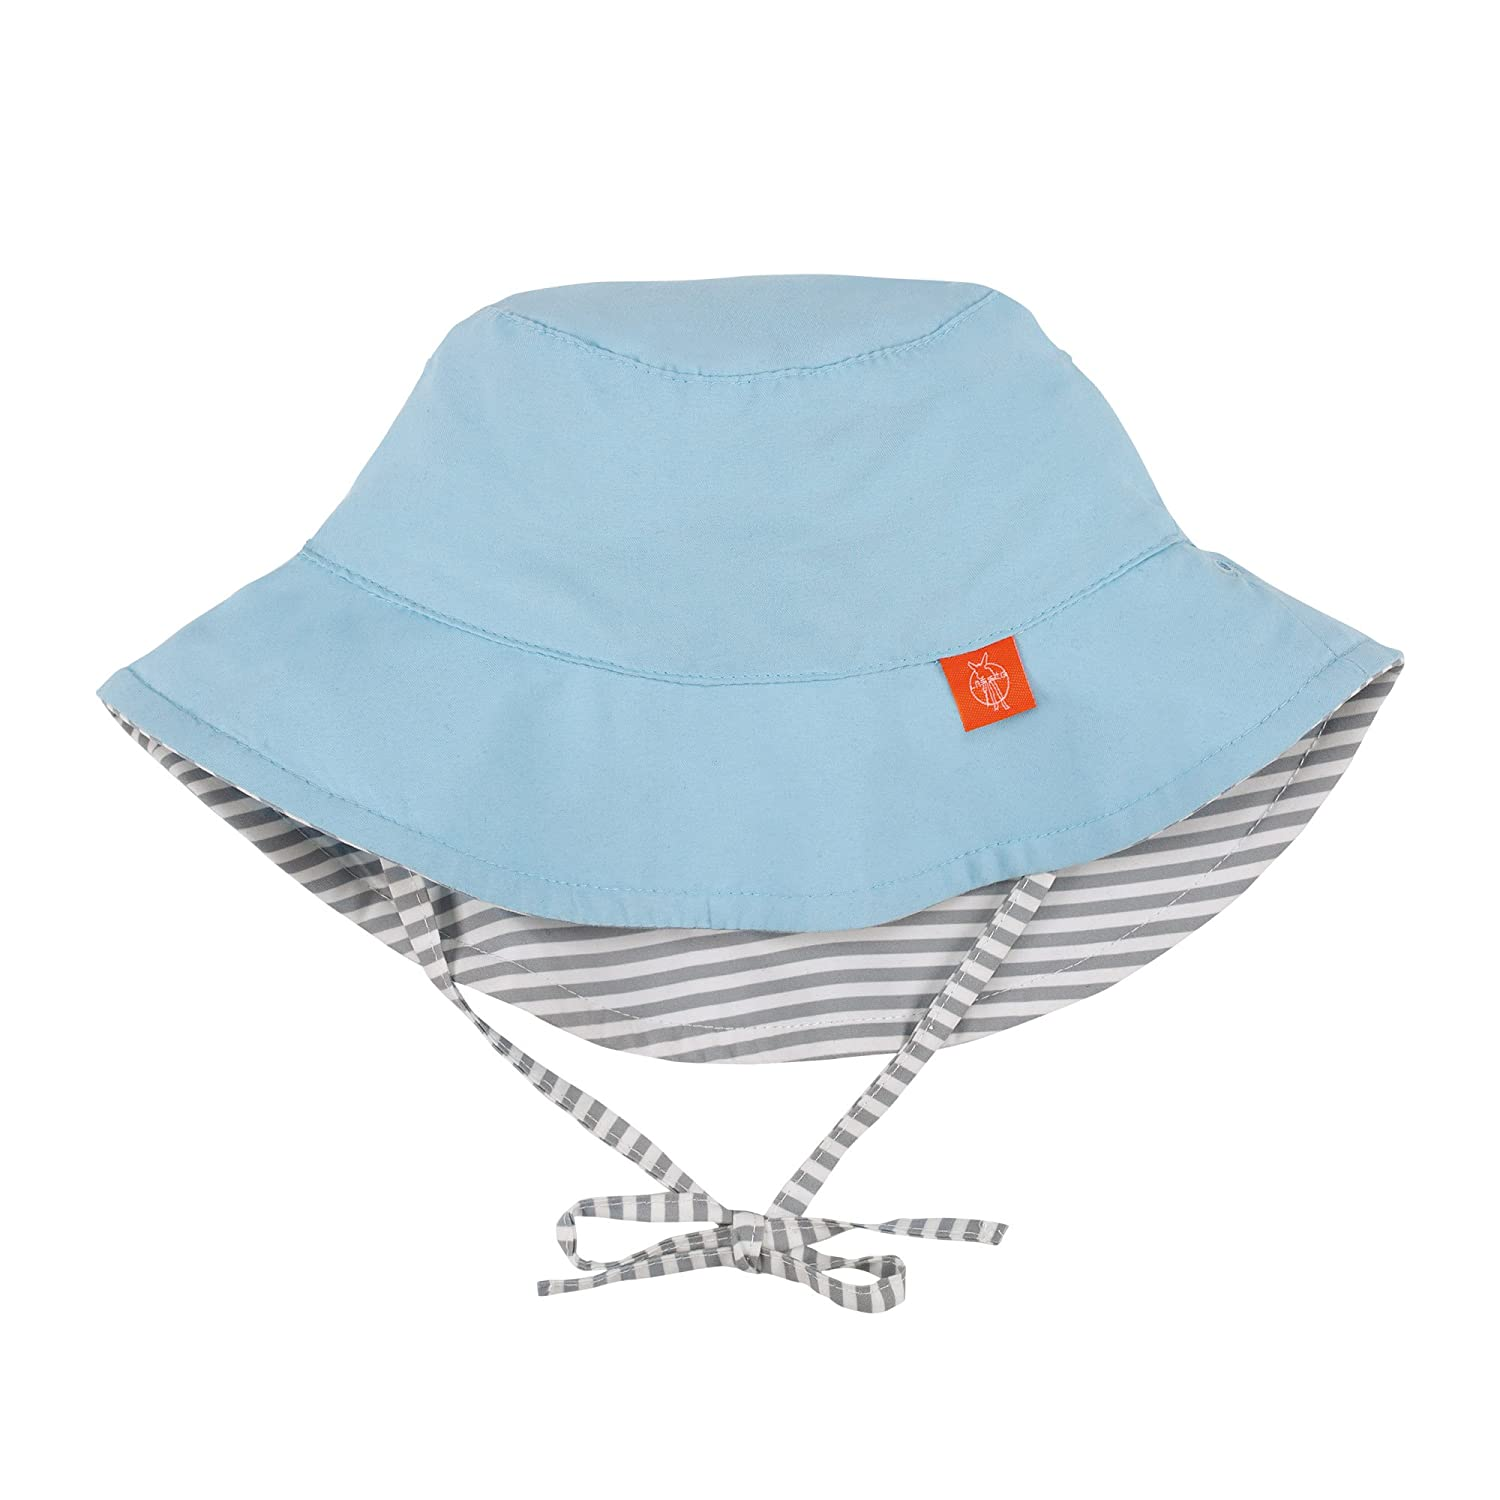 Lässig 1433005211 Baby Sun Protection Bucket Hat Sonnenhut, Small Stripes, Size: Infant 6-18 Monate, mehrfarbig Laessig GmbH 1433005211-18